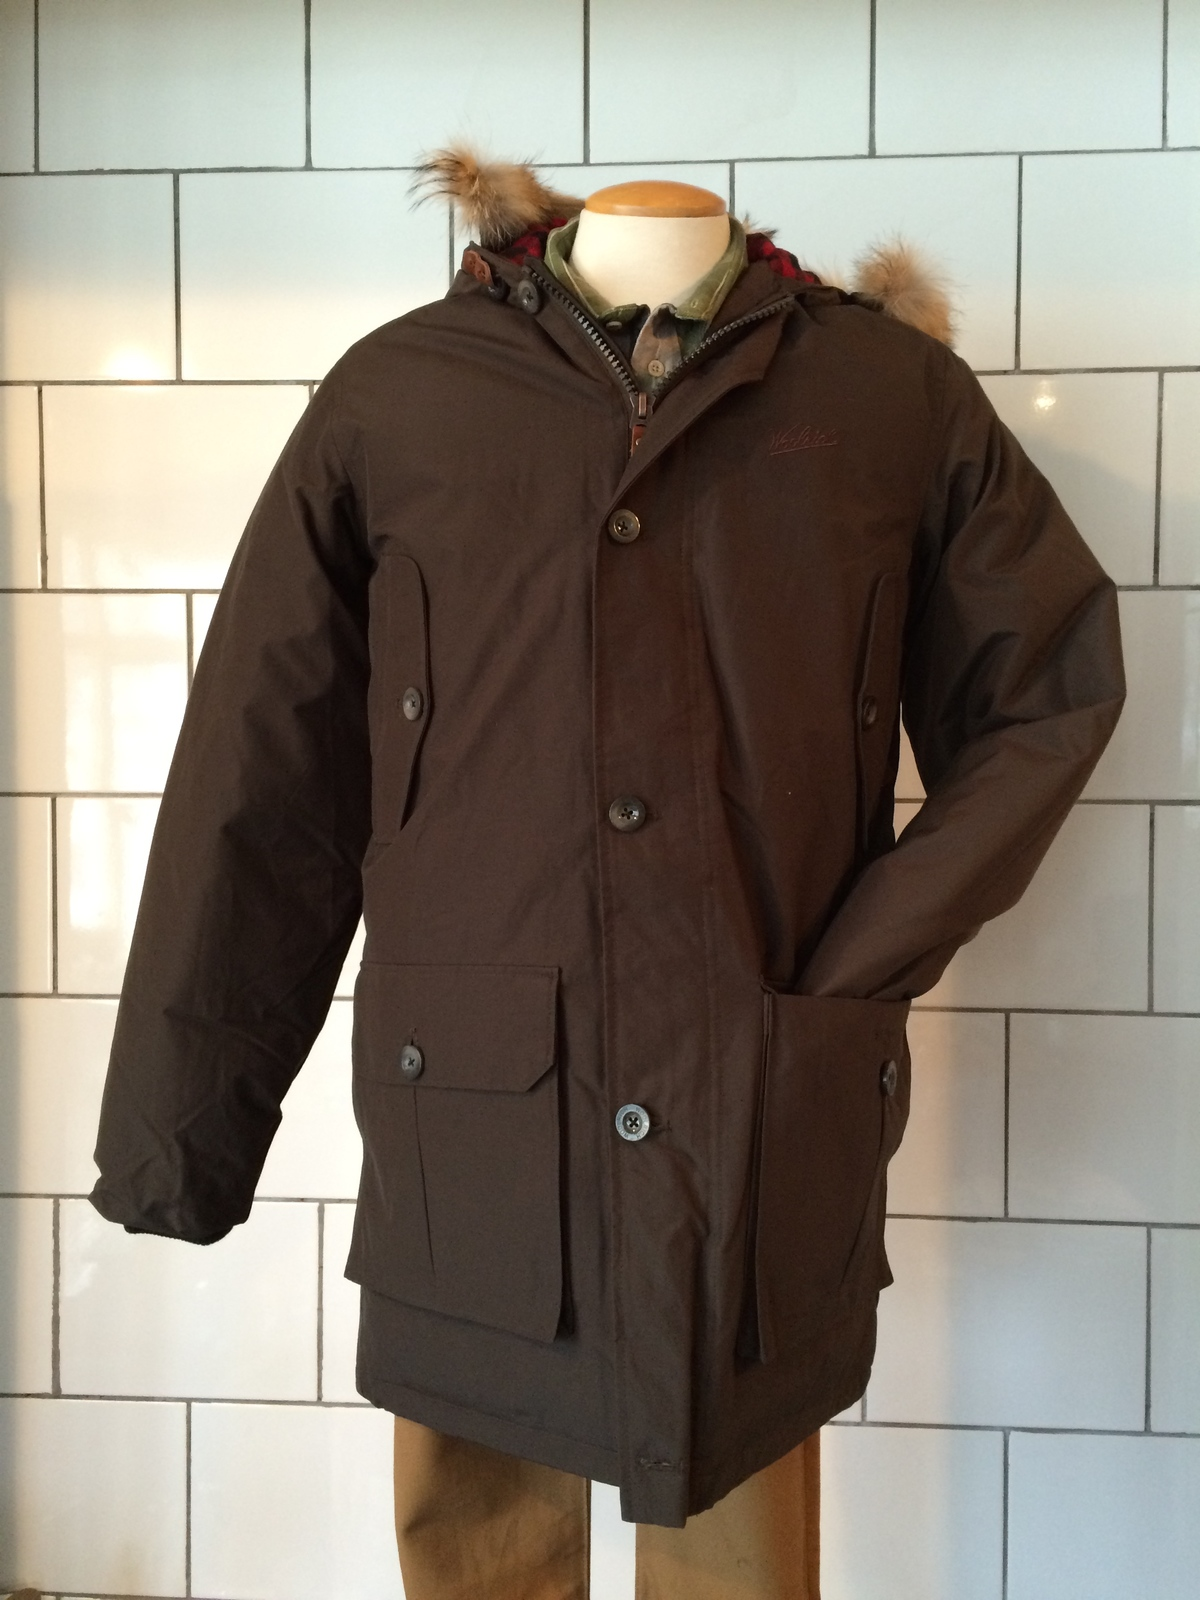 woolrich men 39 s arctic down parka from journeyman company garmentory. Black Bedroom Furniture Sets. Home Design Ideas